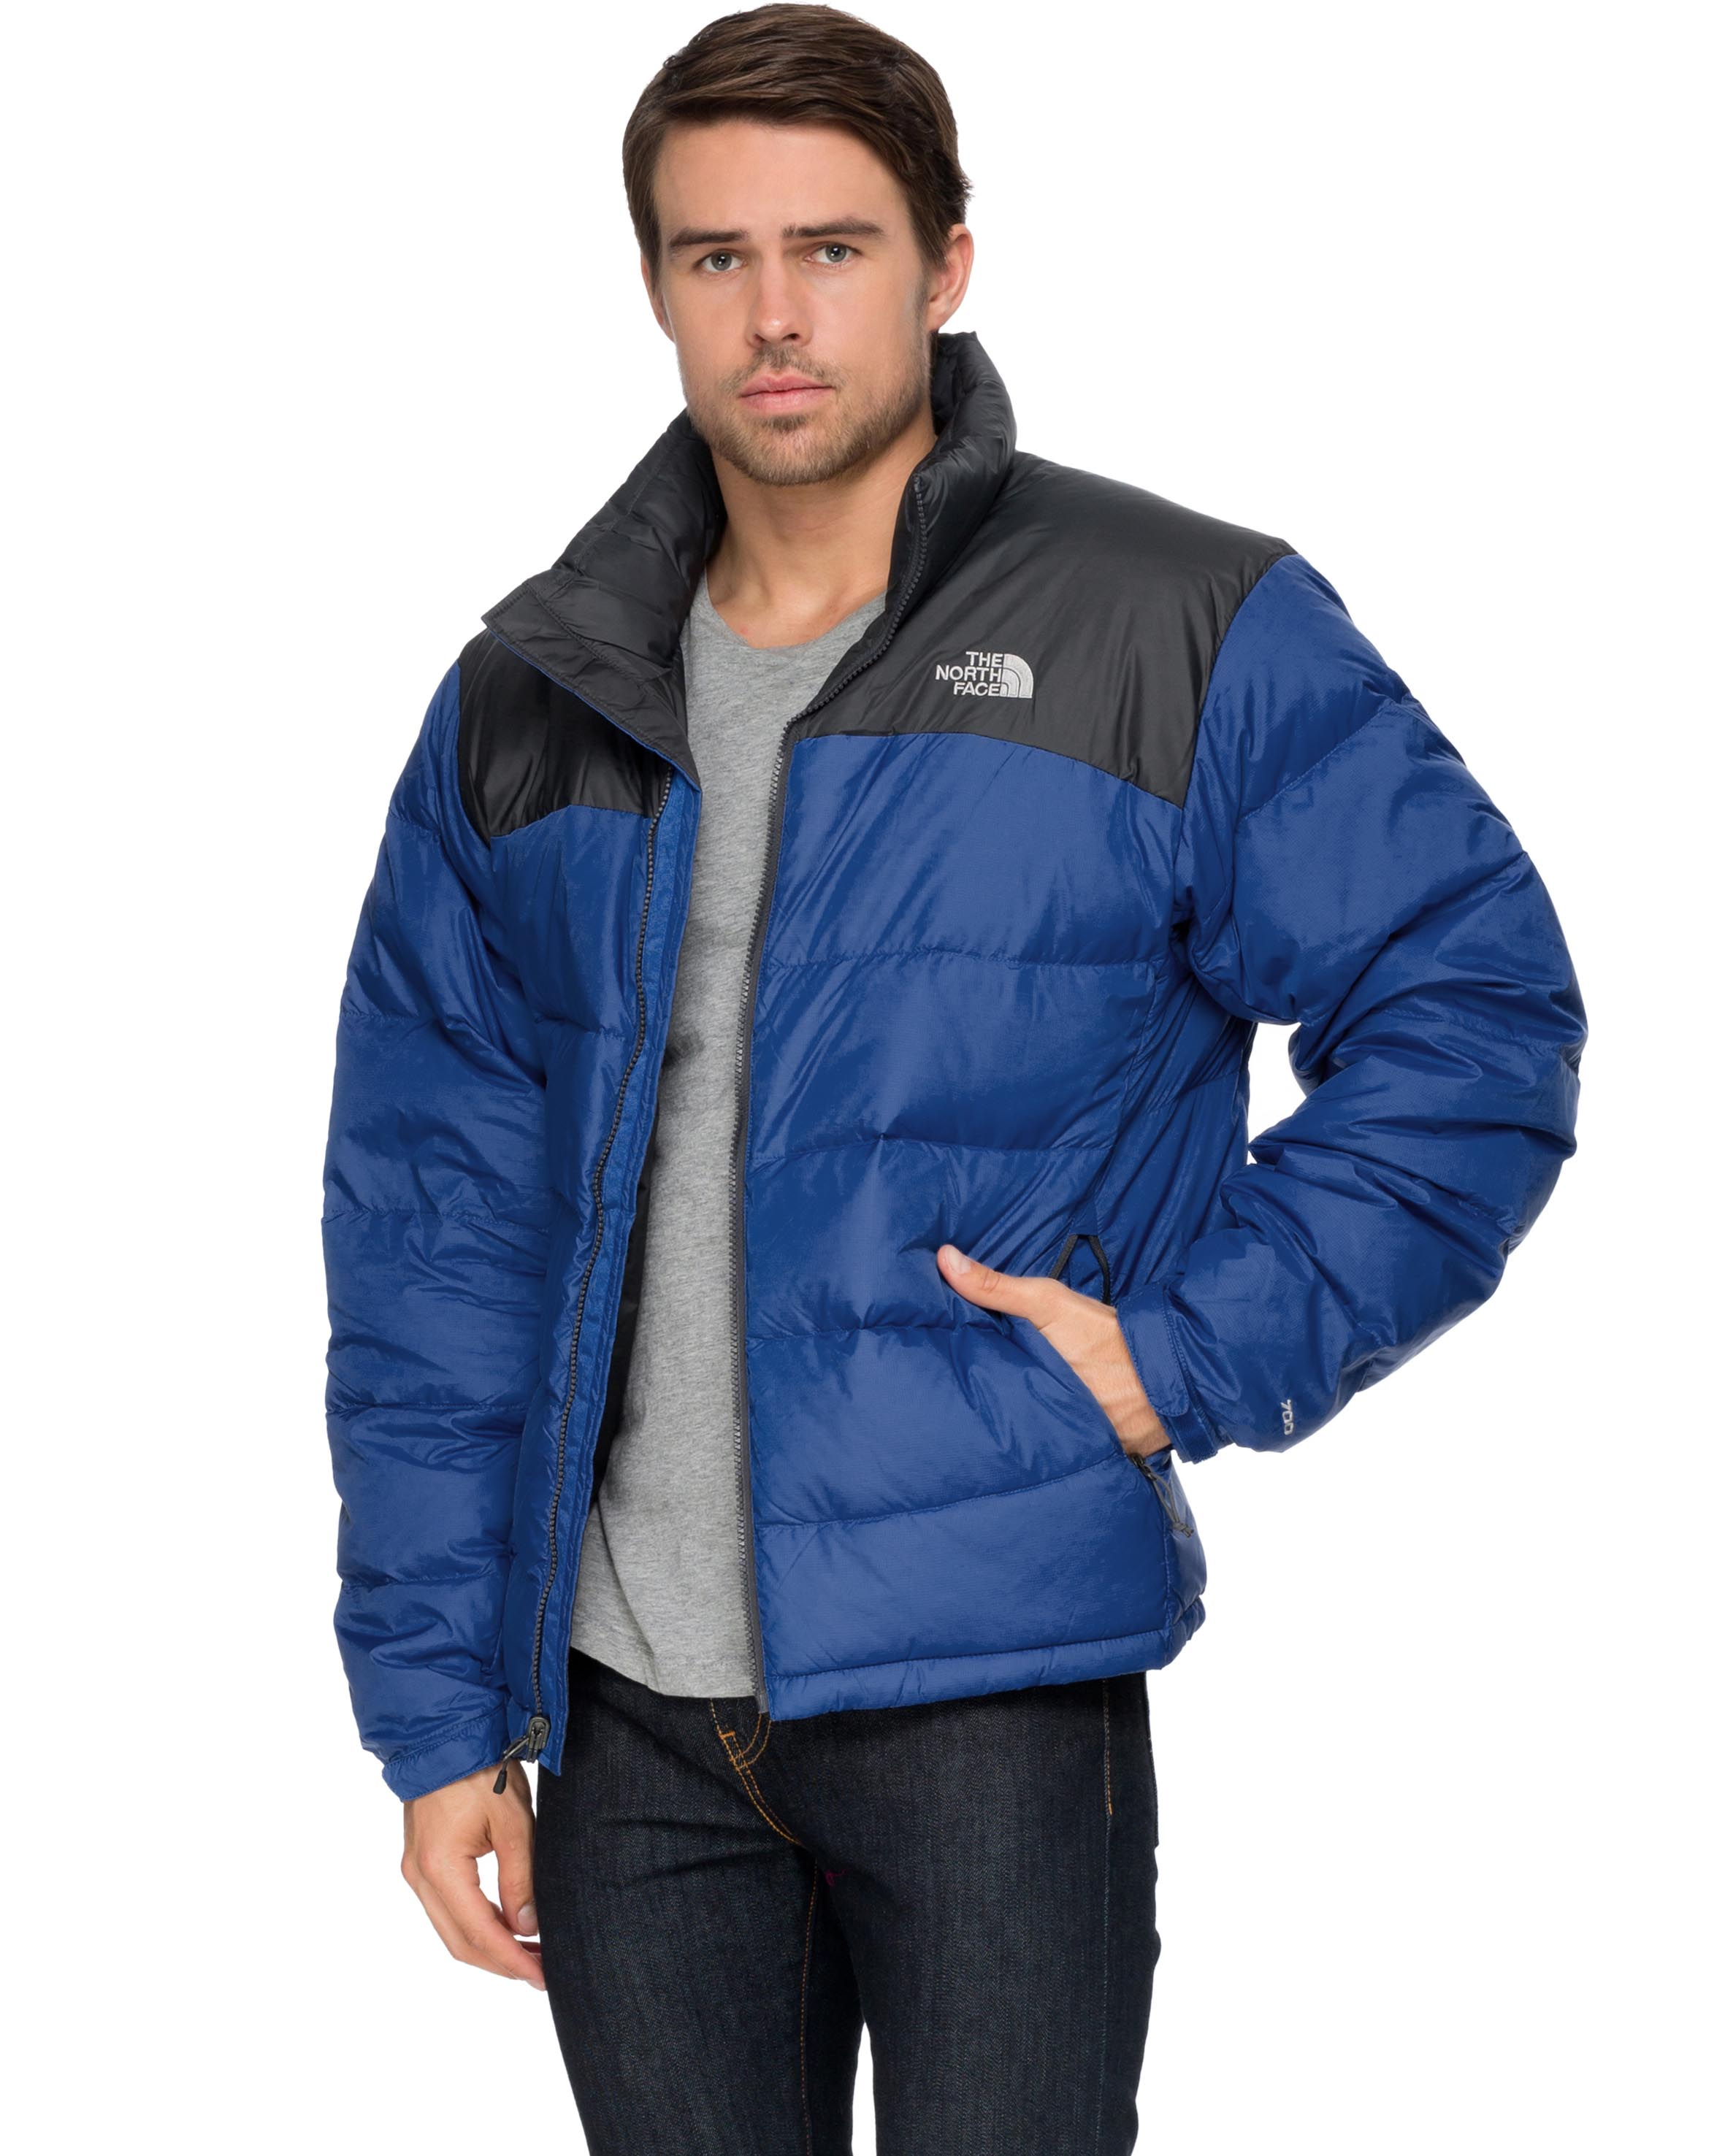 The North Face North Face Clearance Discount